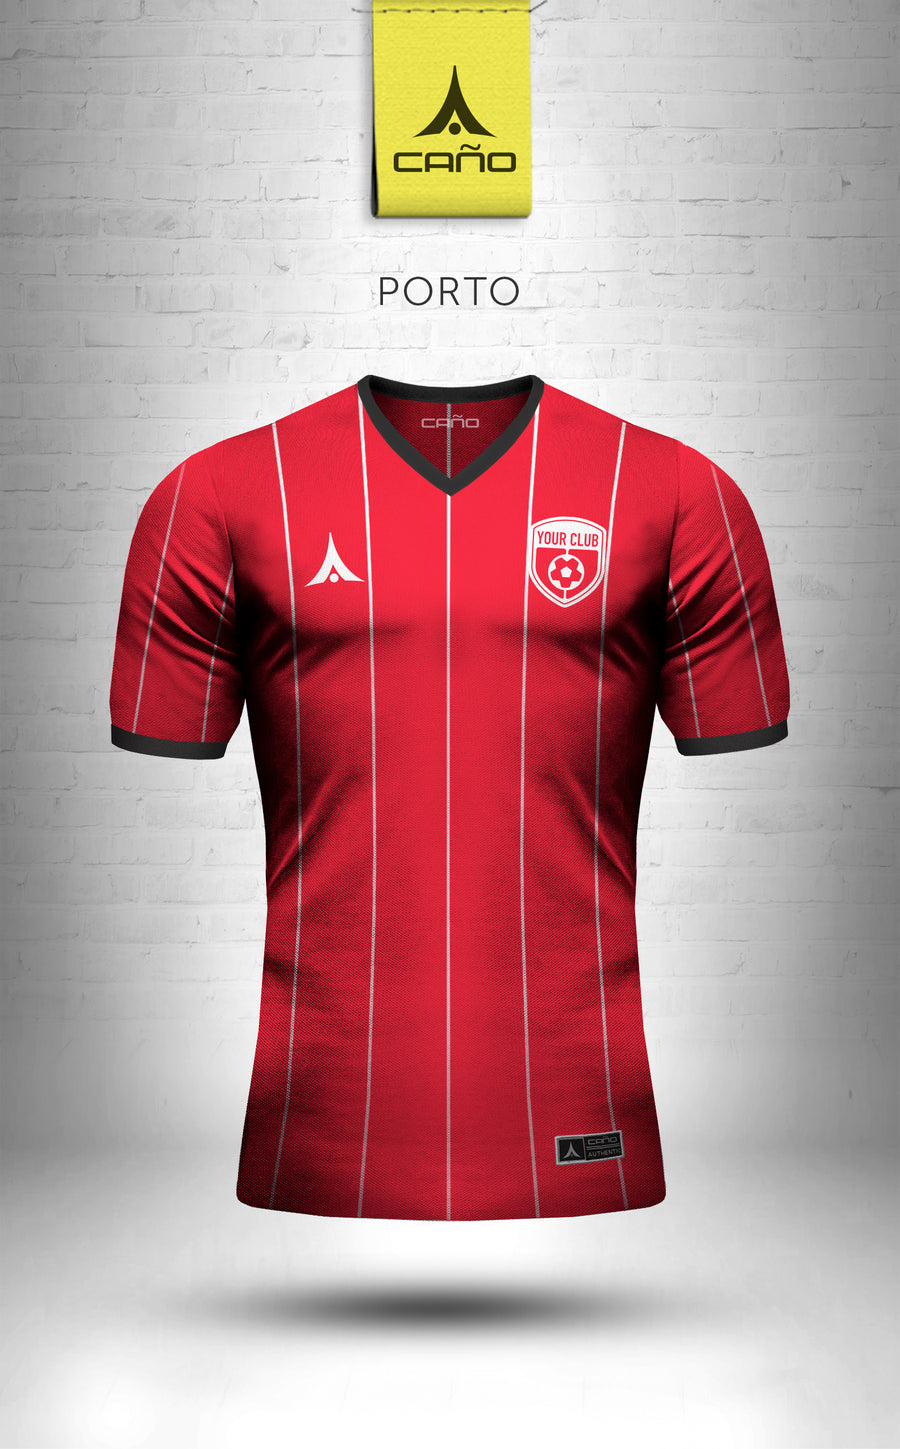 Porto in red/black/white